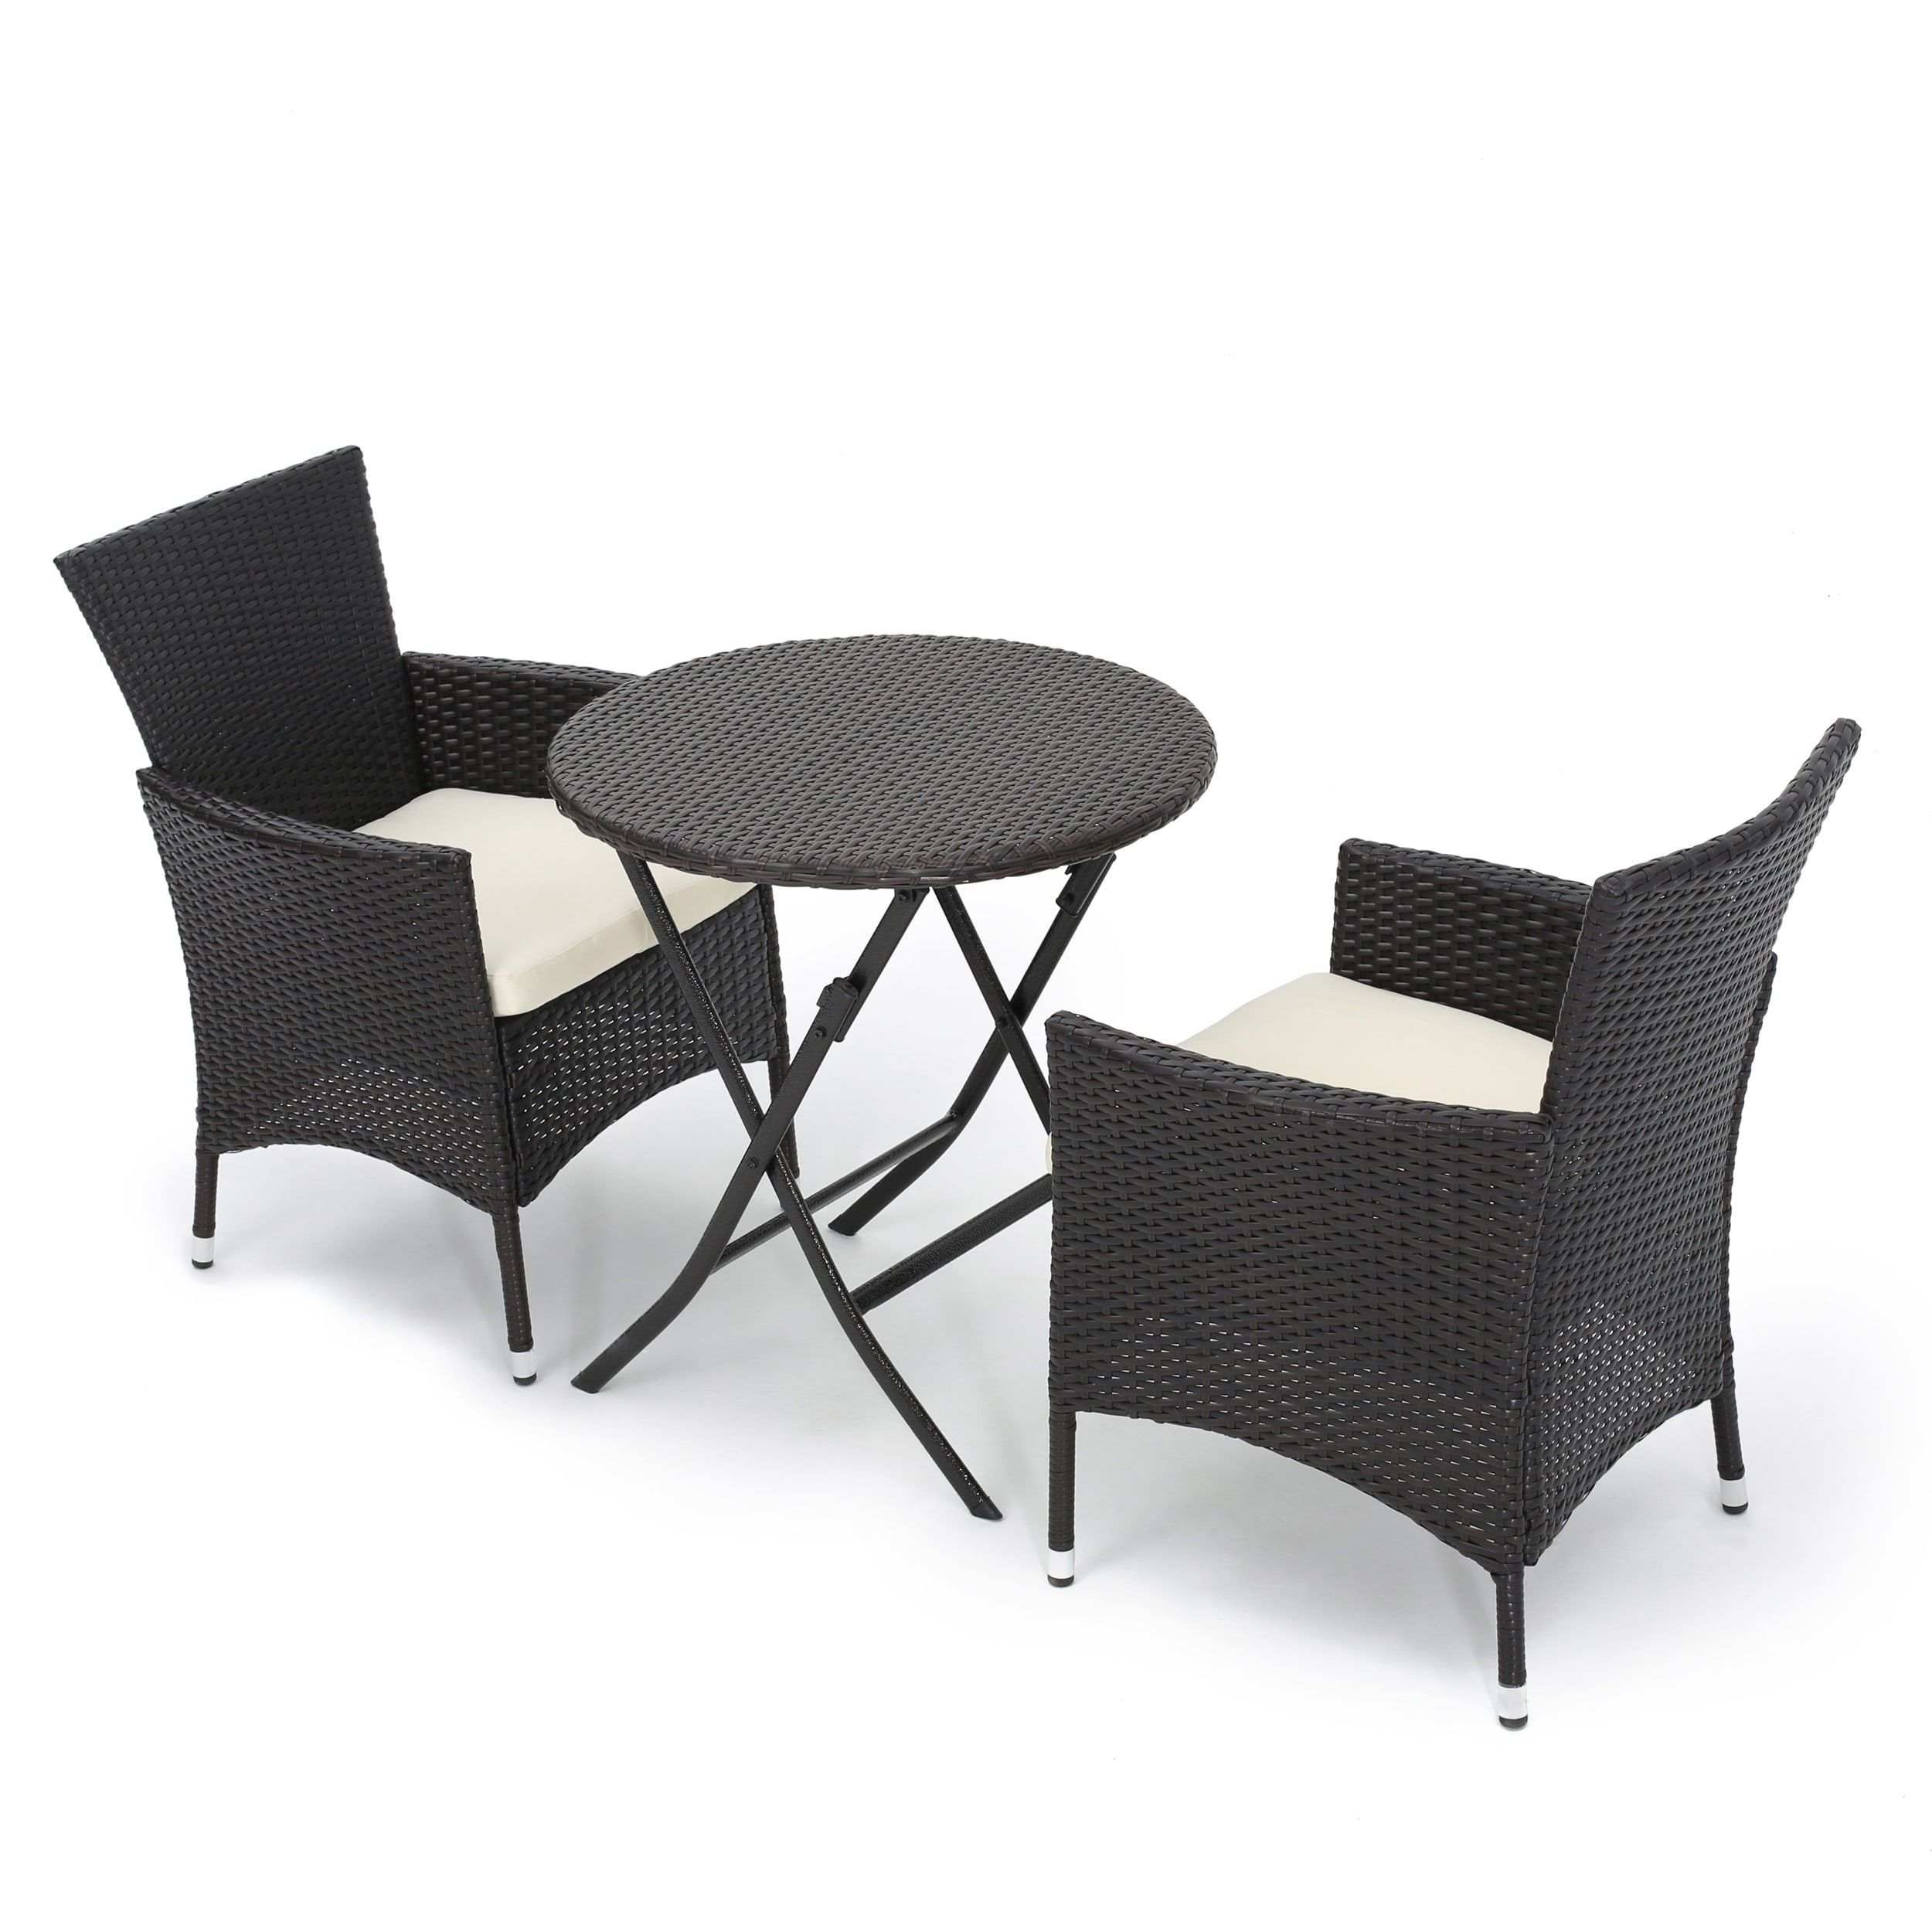 Malaga Outdoor 3-piece Round Wicker Dining Bistro Set with ...